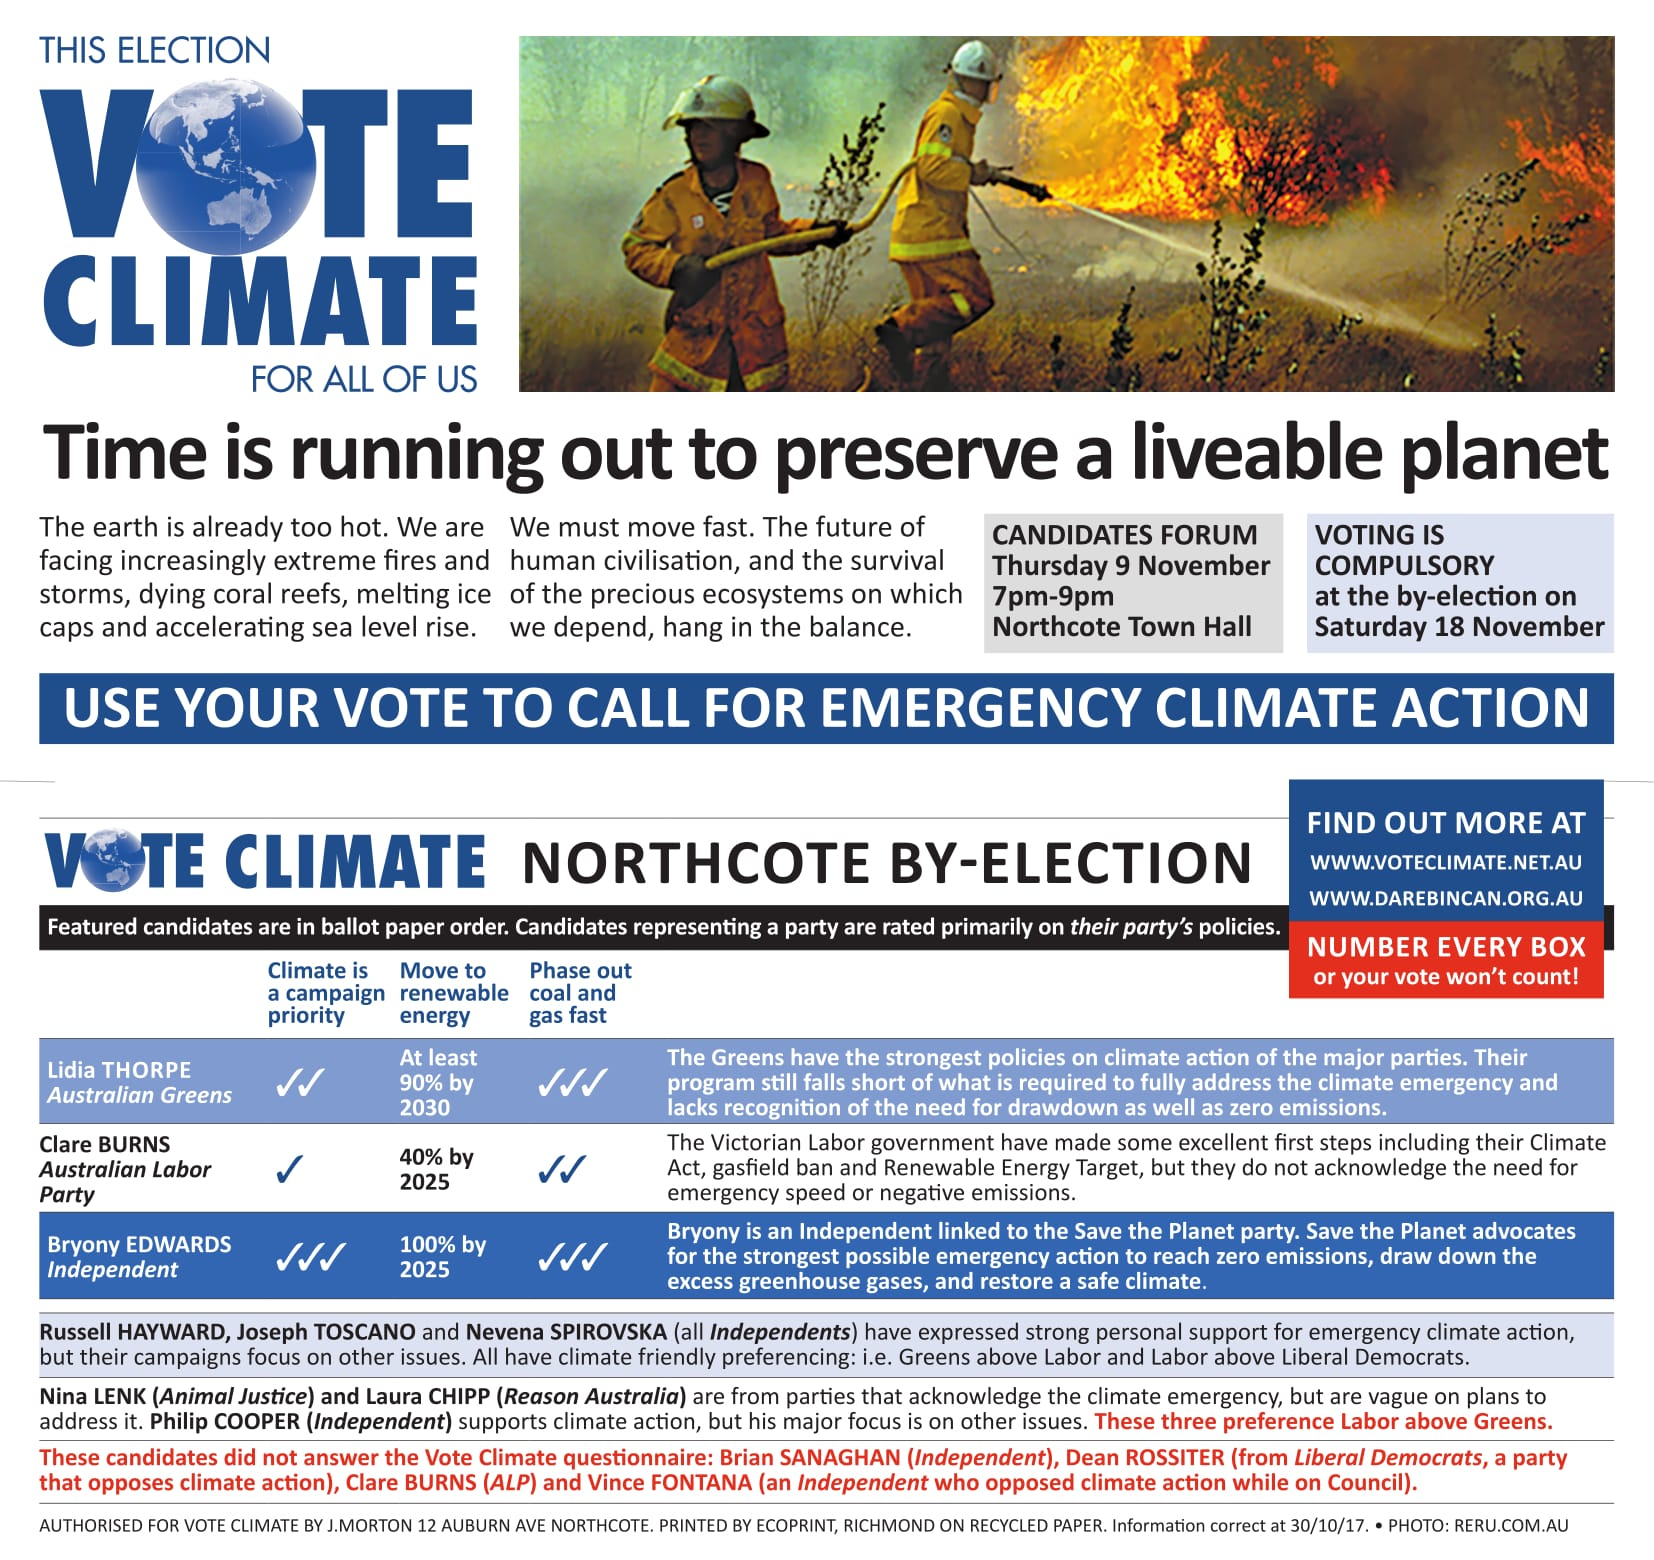 VoteClimate_Scorecard_Facebook.jpg